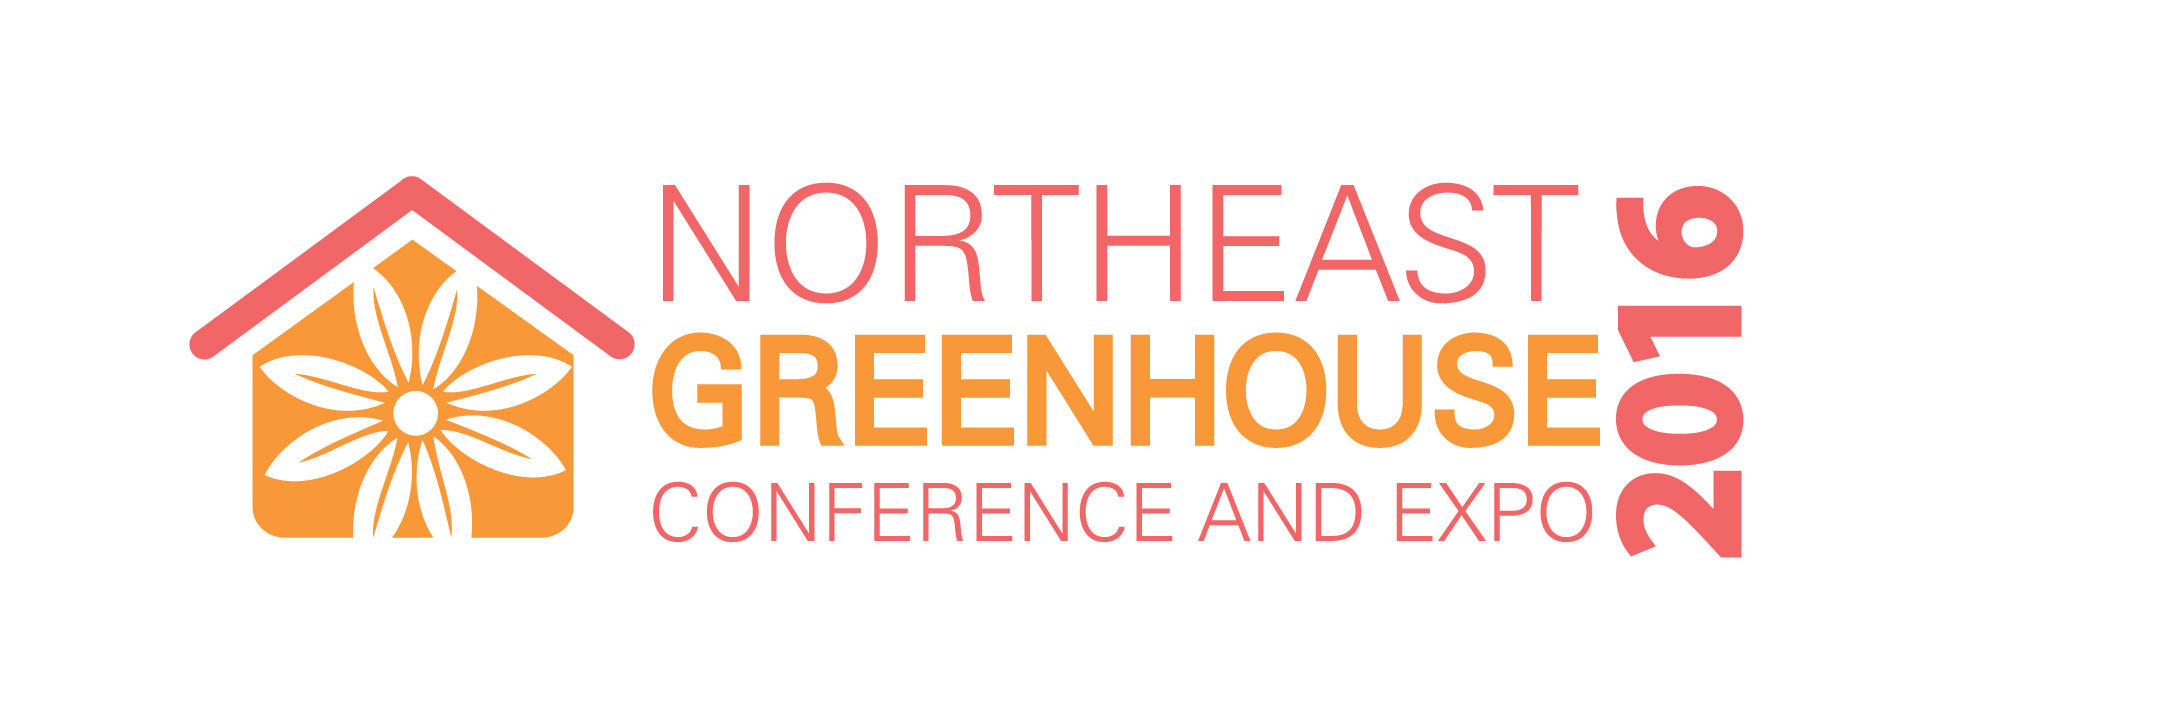 2016 Northeast Greenhouse Conference and Expo